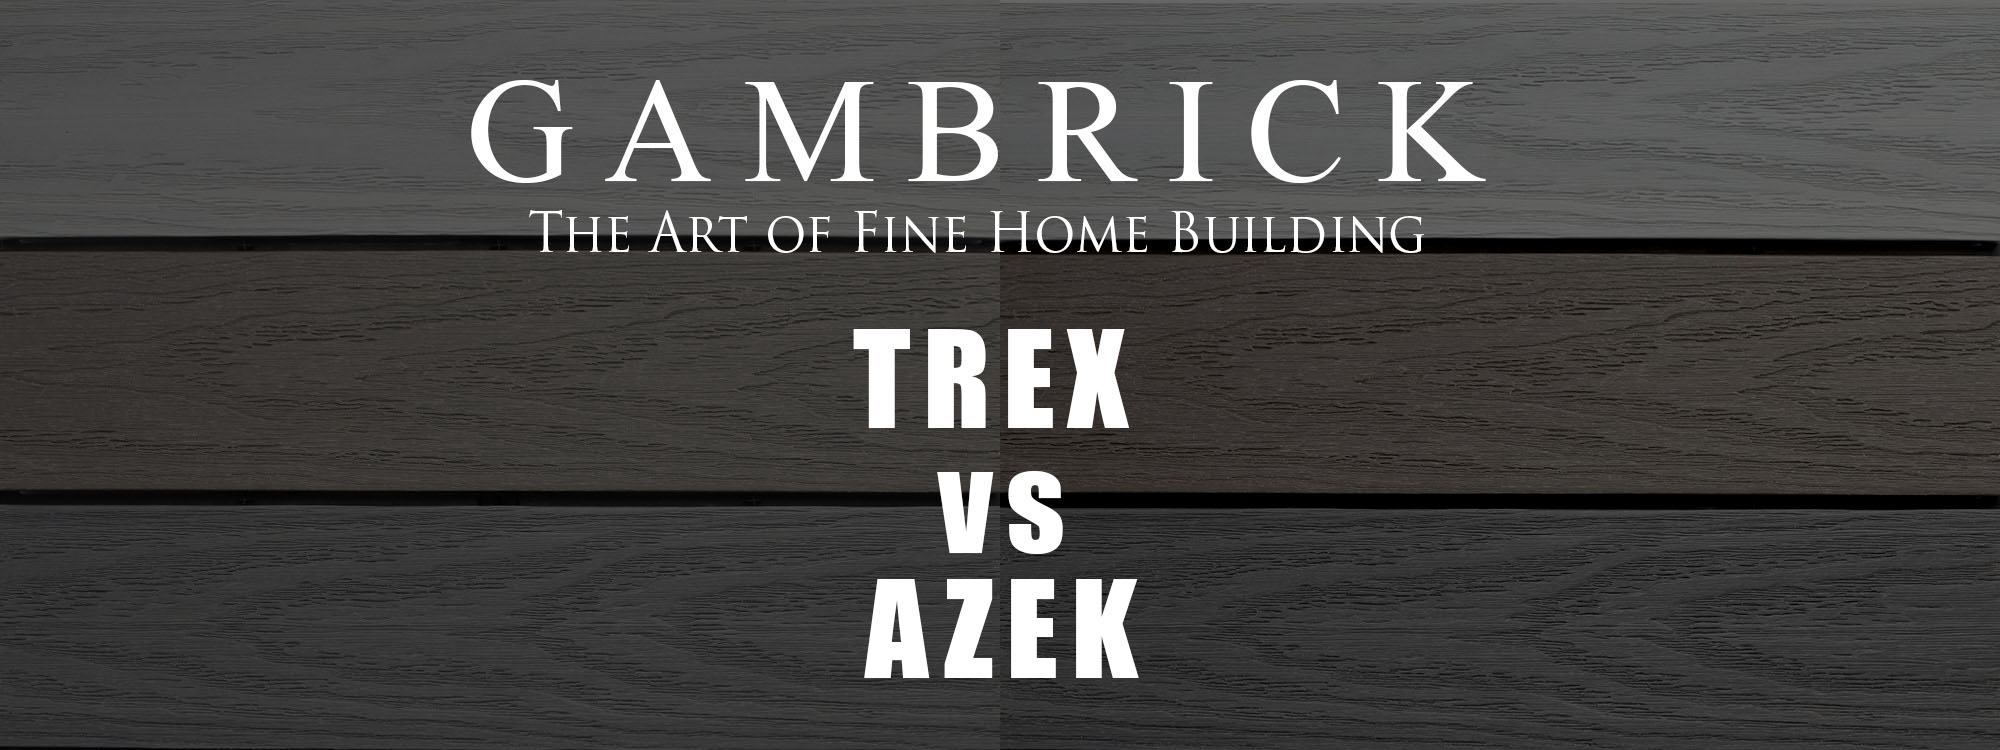 Trex vs Azek decking comparison banner pic | Gambrick